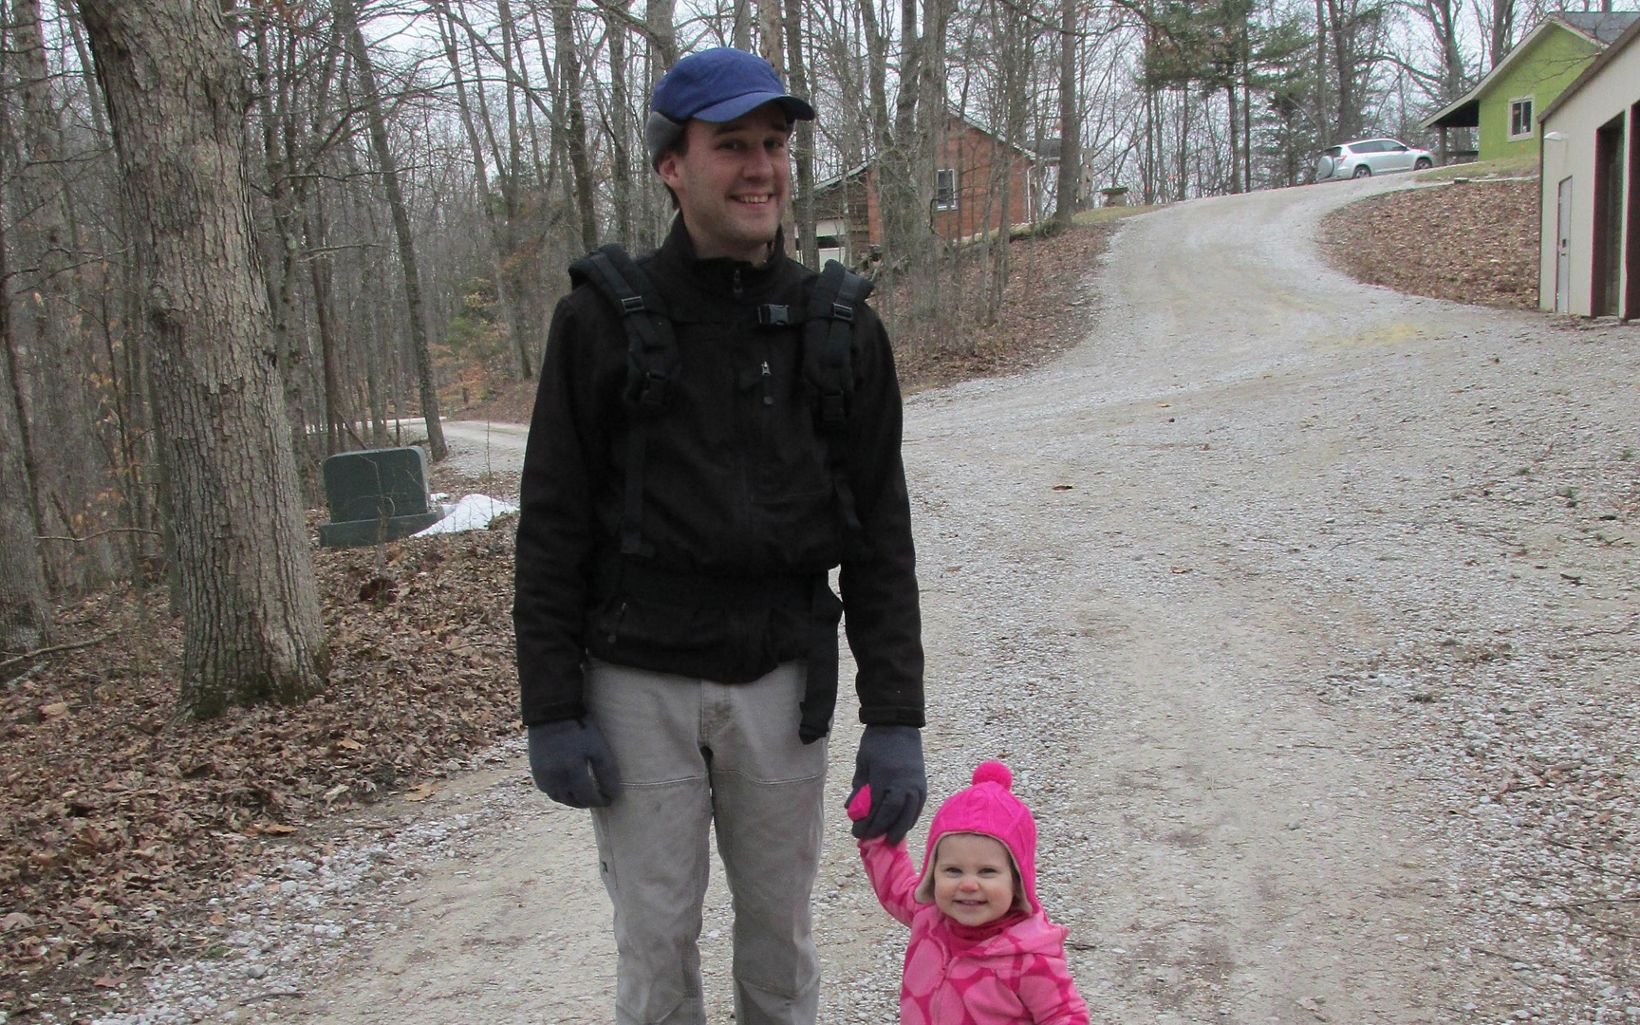 Indiana Chapter forester Chris Neggers and daughter Diana, taken in 2014.